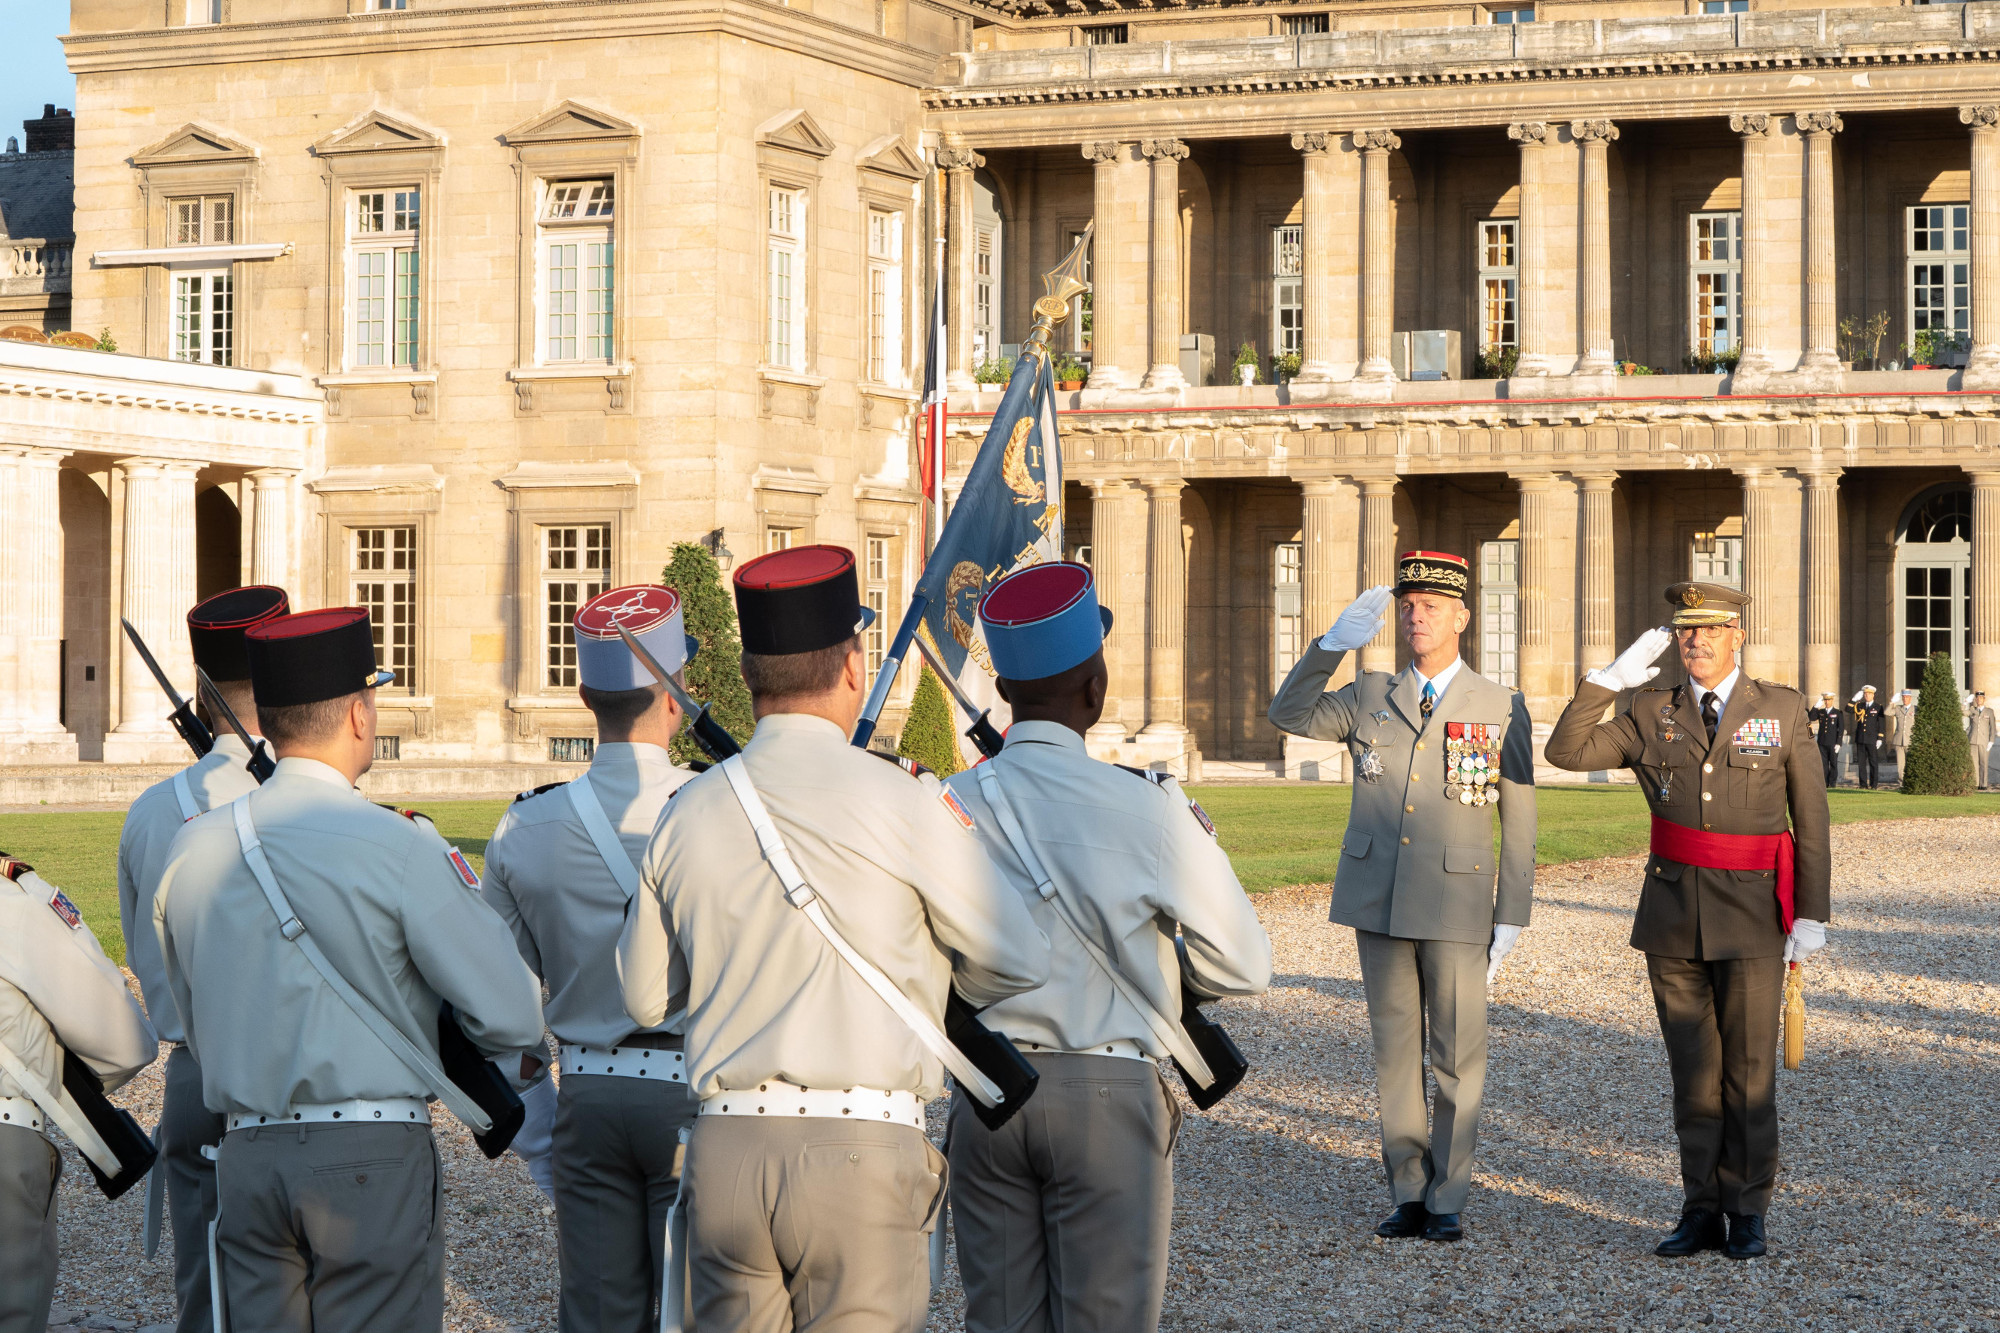 The Spanish Chief of the Defence Staff is awarded with the Legion of Honour of France